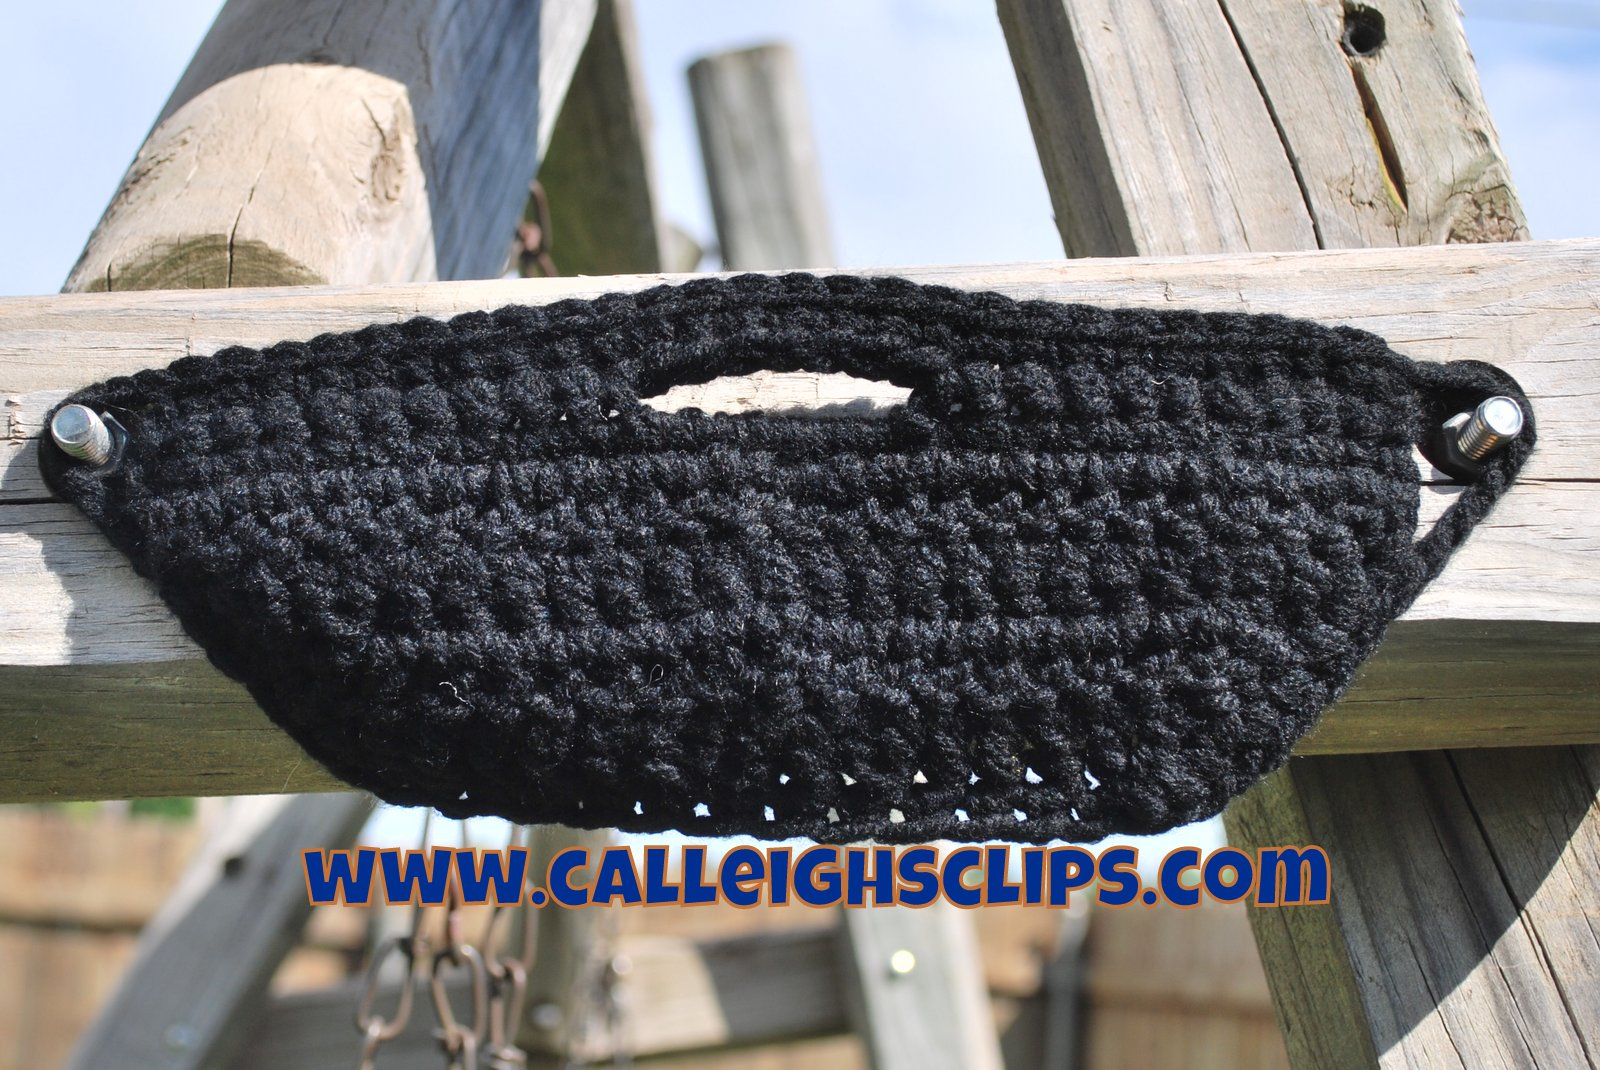 Calleighs clips crochet creations free pattern fear the beard wednesday june 13 2012 dt1010fo